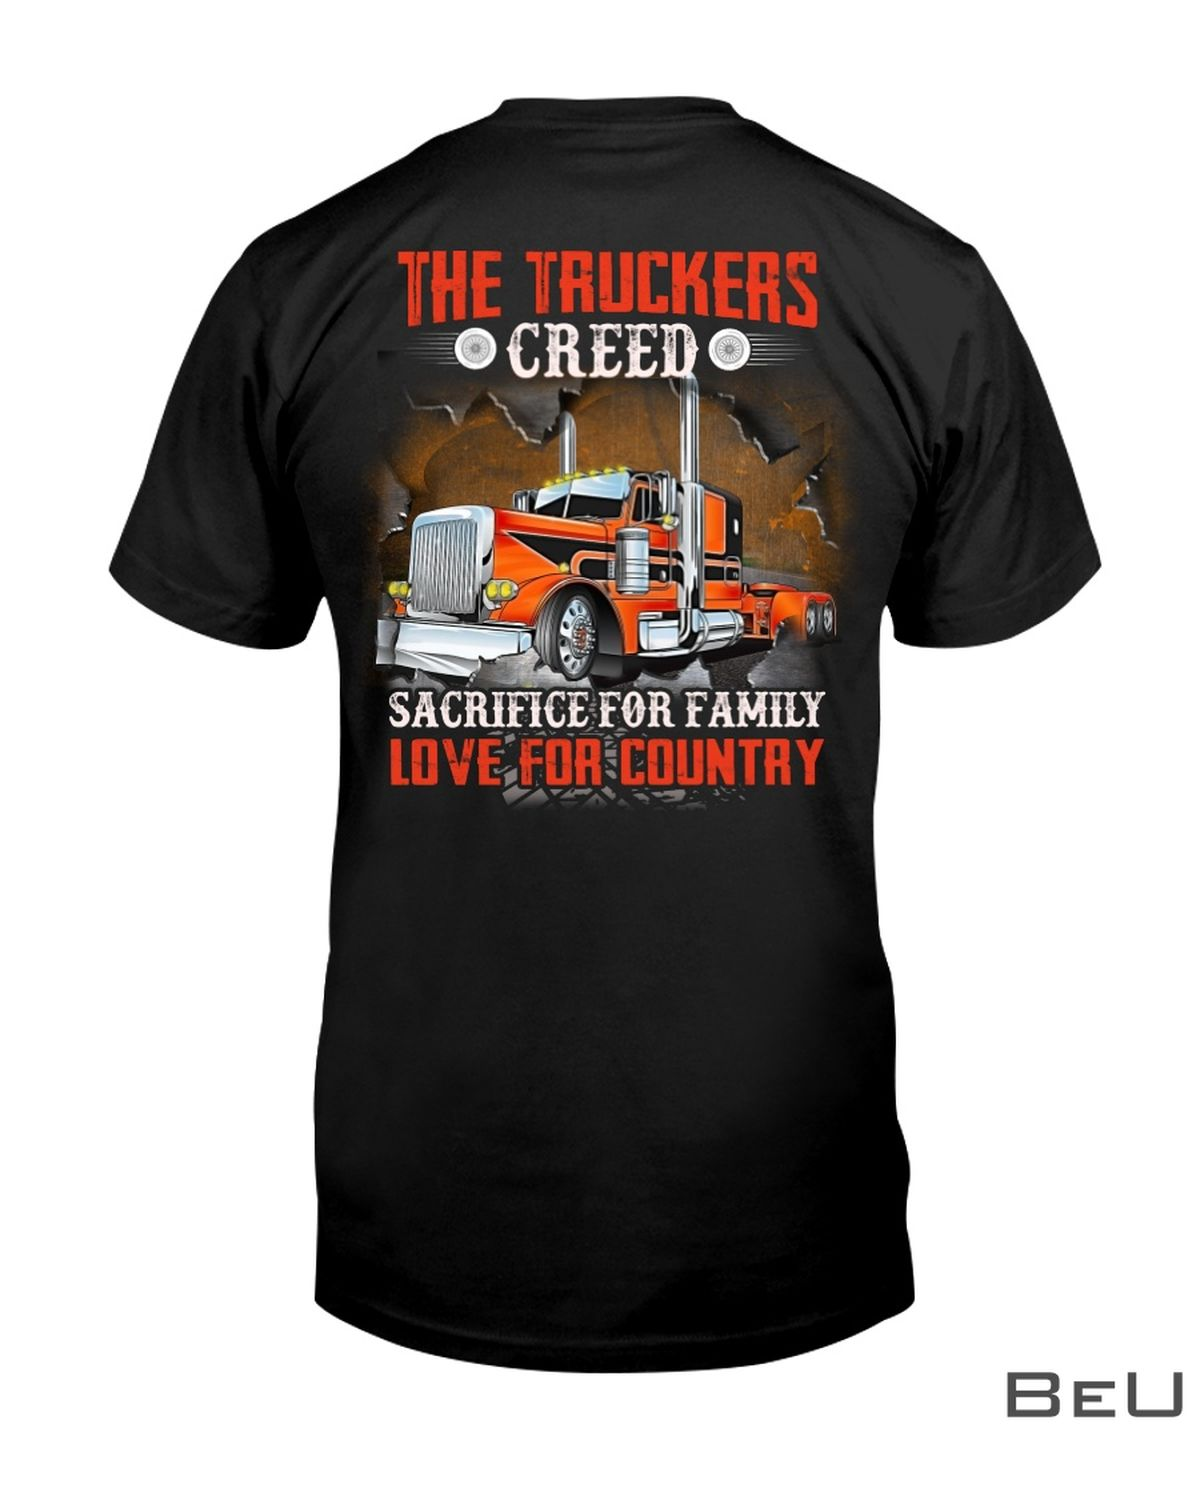 The Truckers Creed Sacrifice For Family Love For Country Shirt